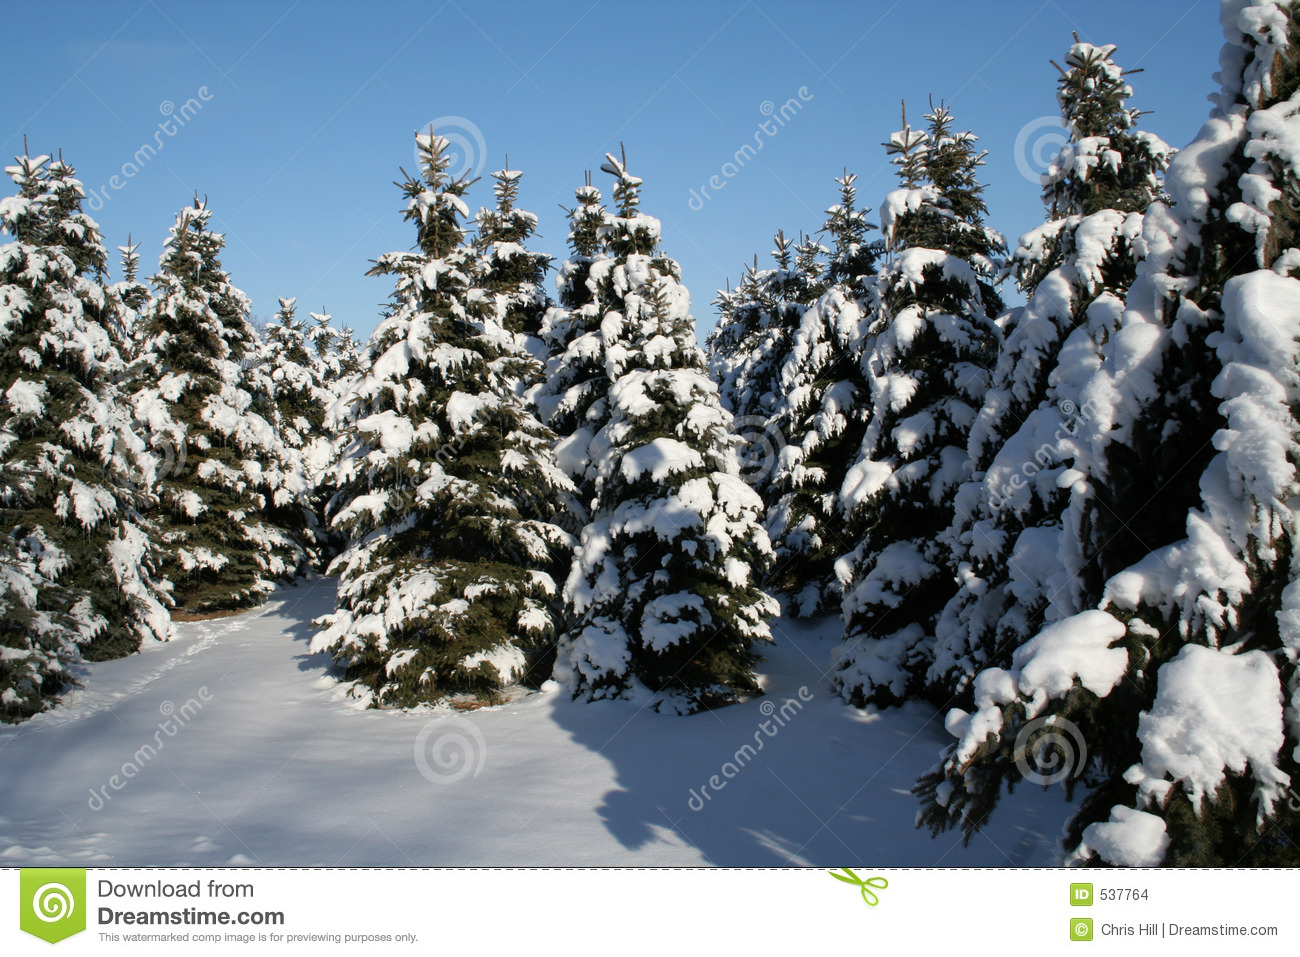 Snowy Evergreens Stock Images - Image: 537764